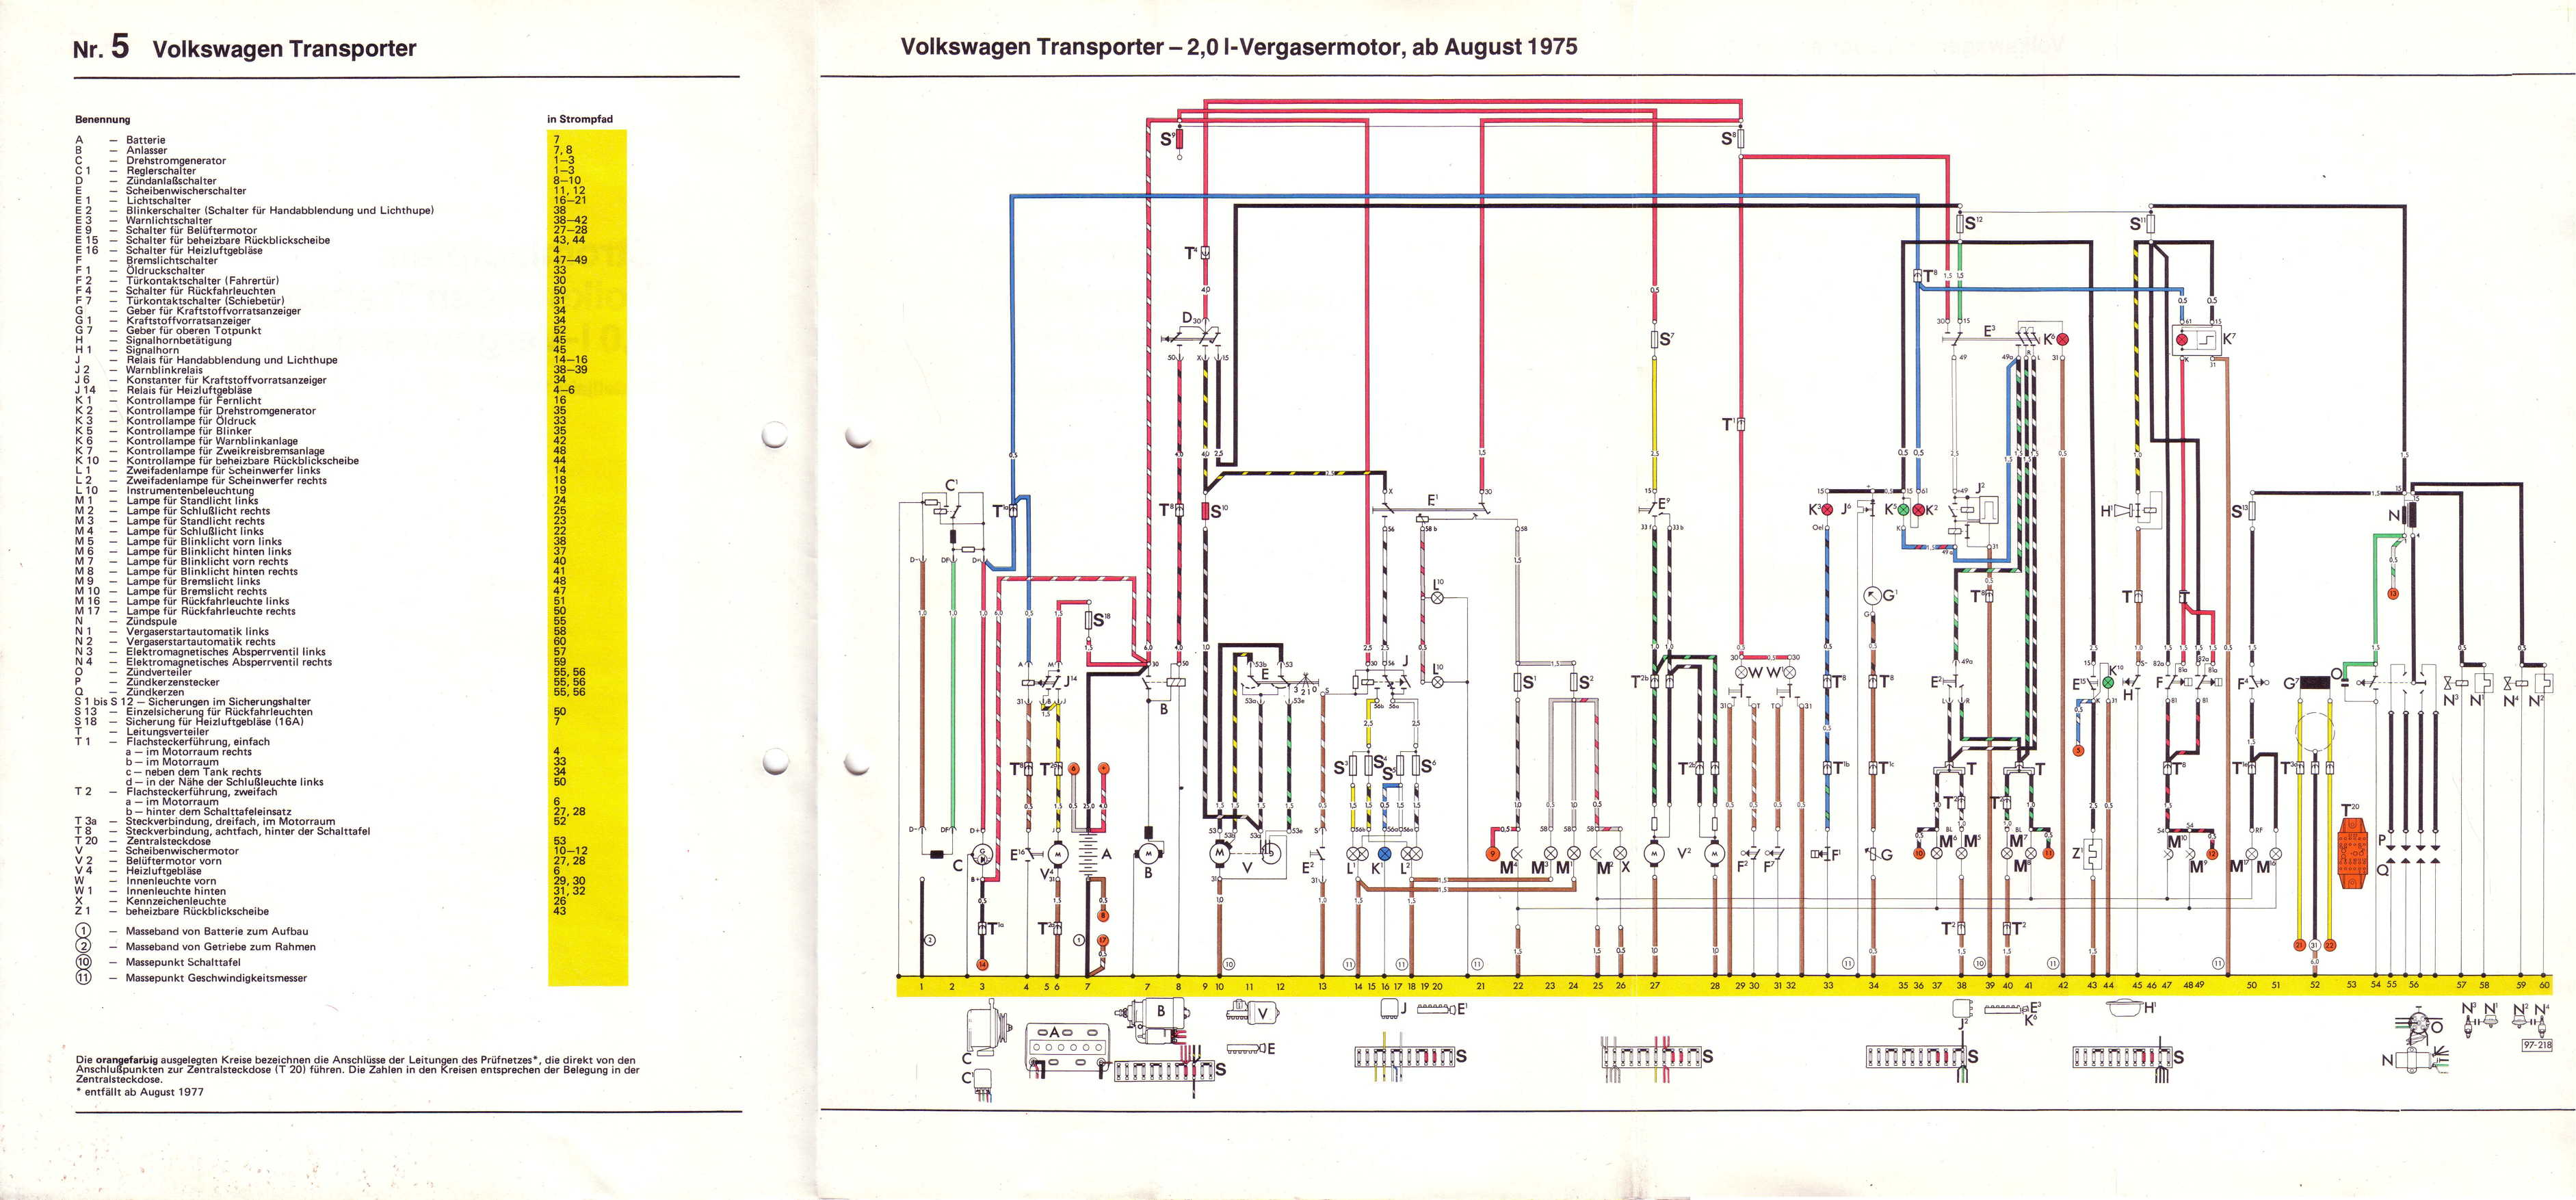 1975 08 vw t2 2l wiring diagram?resize\\\\\\\\\\\\\\\\\\\\\\\\\\\\\\\\\\\\\\\\\\\\\\\\\\\\\\\\\\\\\\\\\\\\\\\\\\\\\\\\\\\\\\\\\\\\\\\=665%2C310 gfs pickup wiring diagram vintage strat wiring diagram \u2022 free gfs wiring harness at gsmx.co